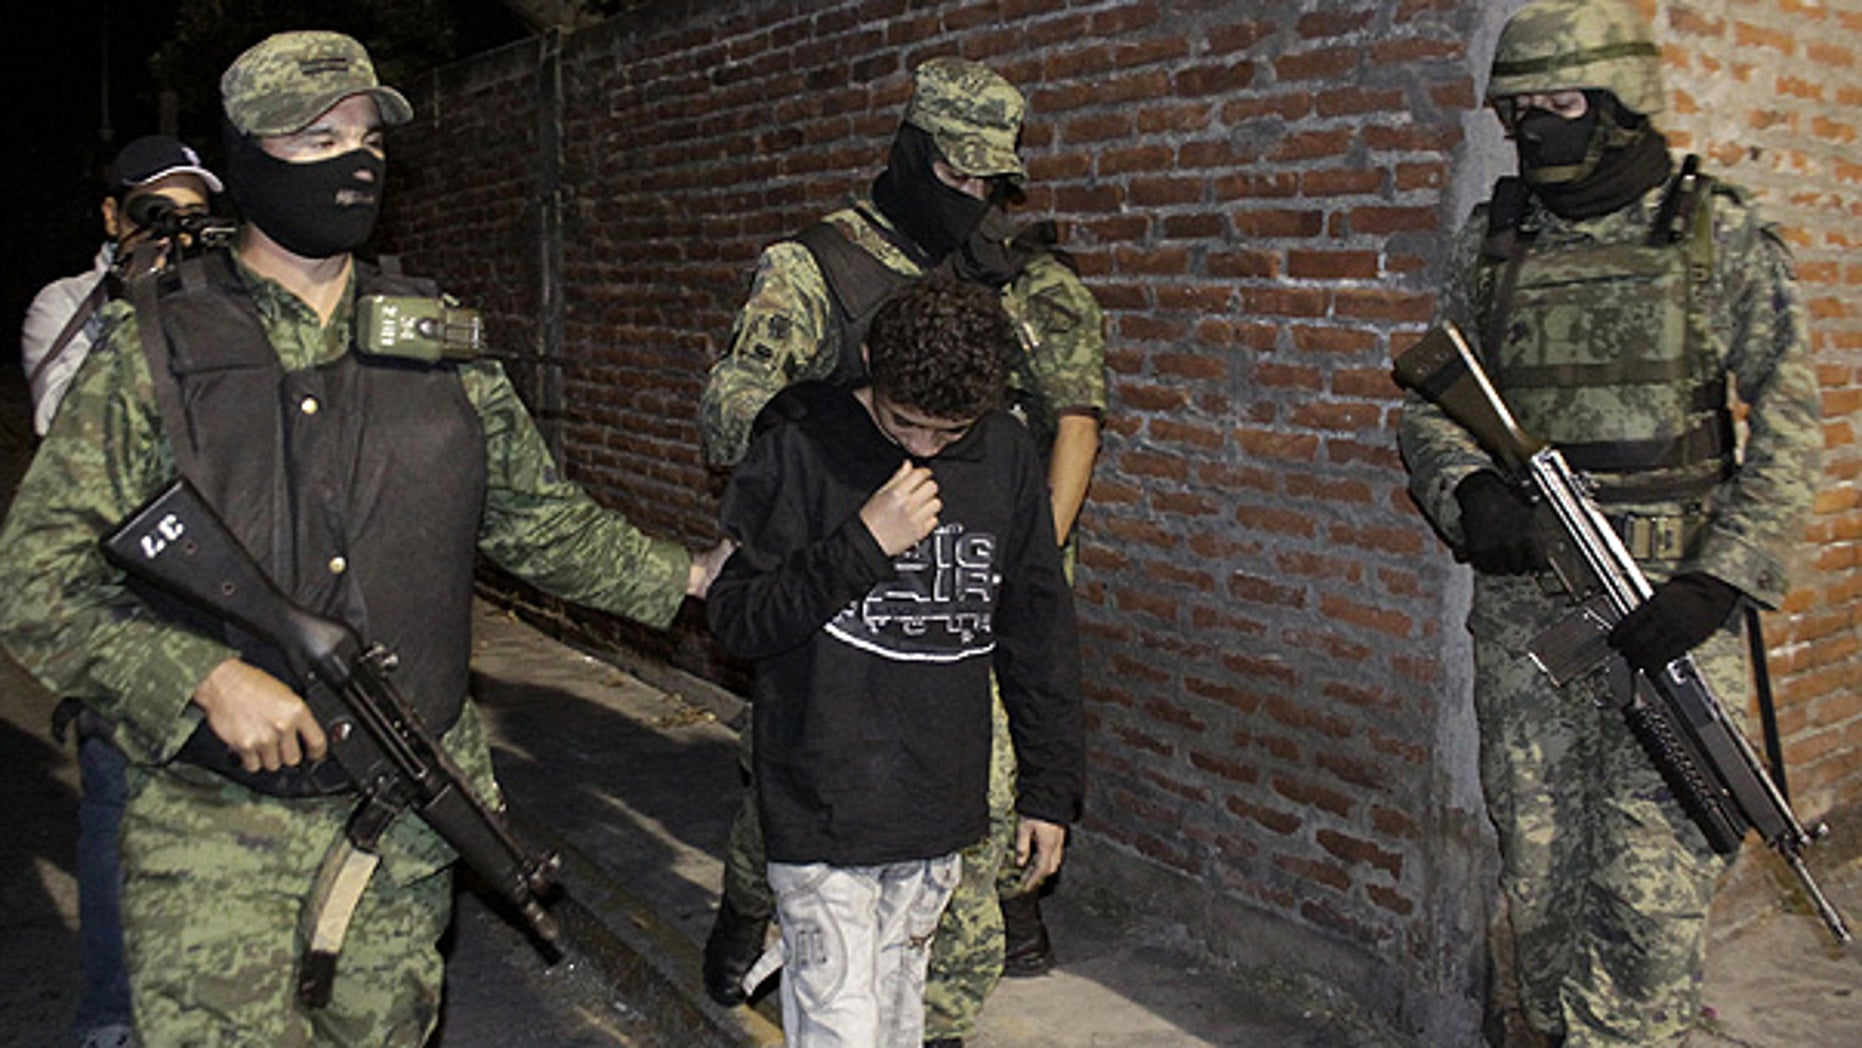 """Dec. 3: Soldiers escort a 14-year-old known as """"El Ponchis"""" who is suspected of working as a killer for a drug cartel, in the city of Cuernavaca, Mexico."""